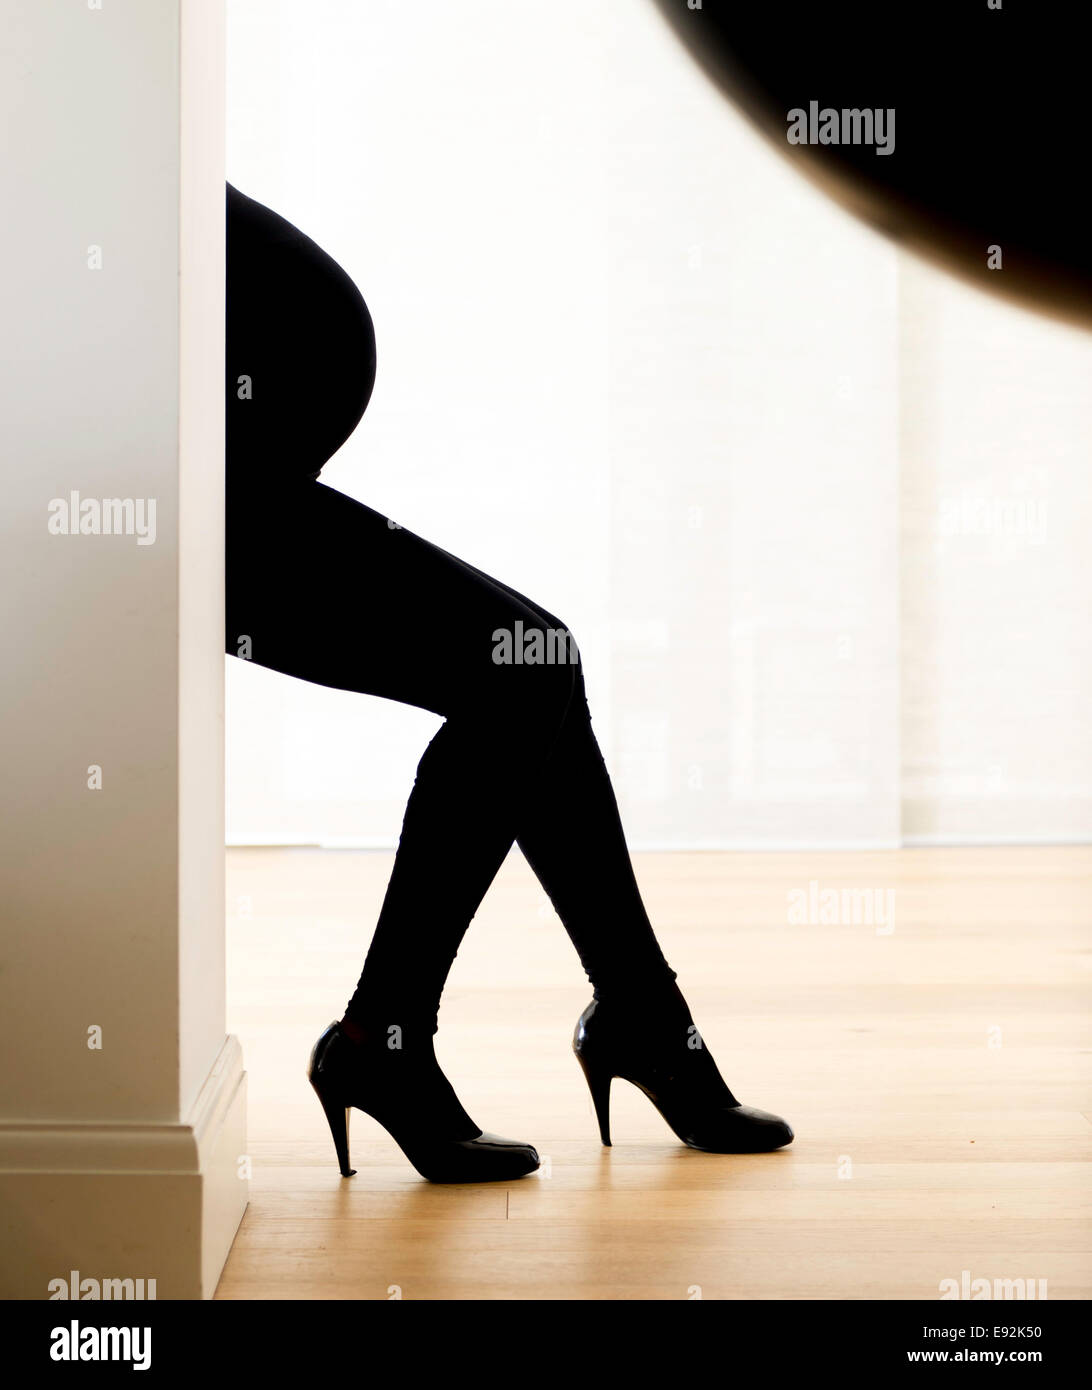 Pregnant woman in high heels - Stock Image